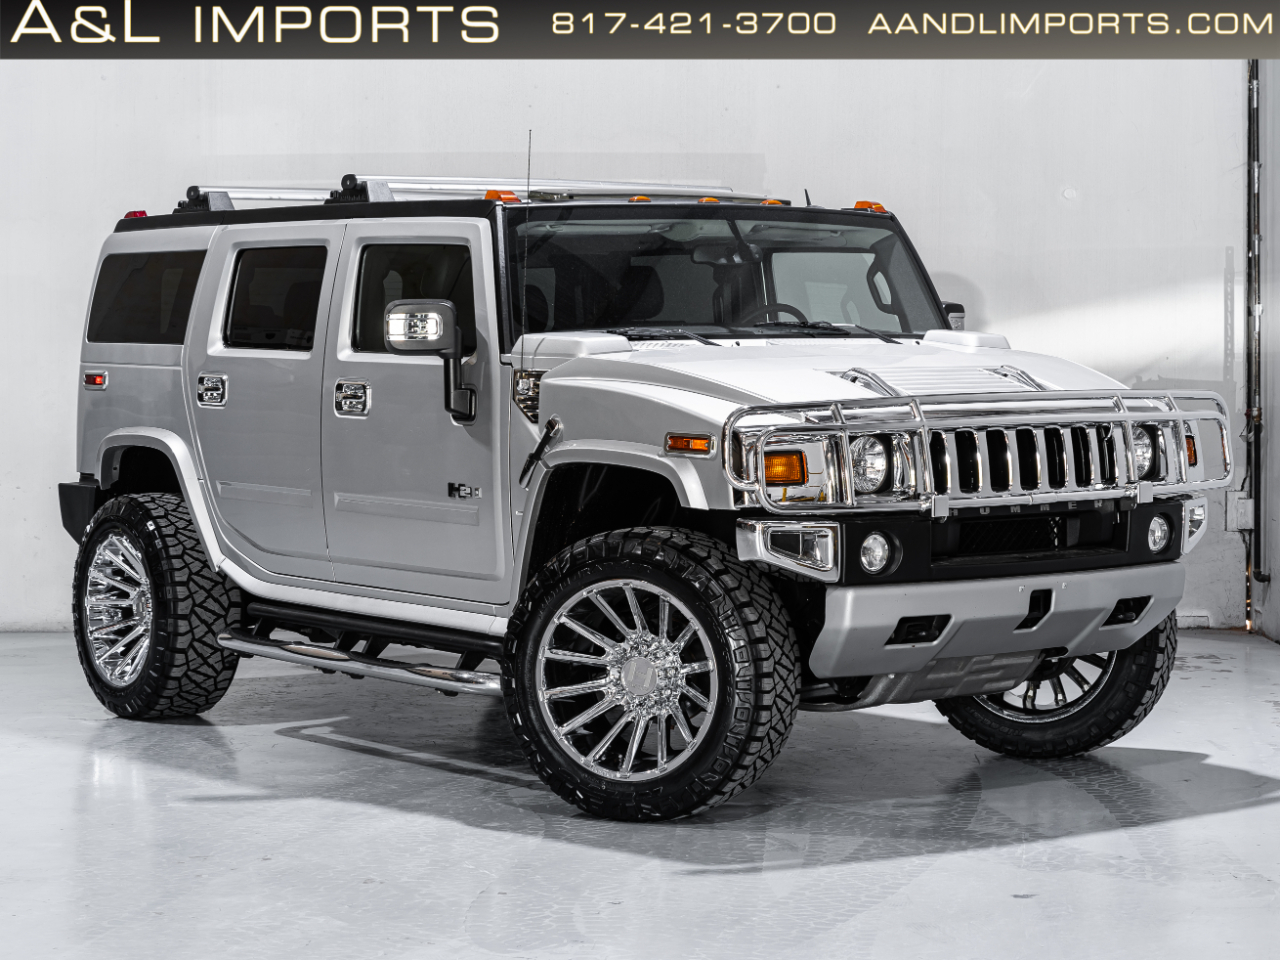 HUMMER H2 4WD 4dr SUV Luxury 2009